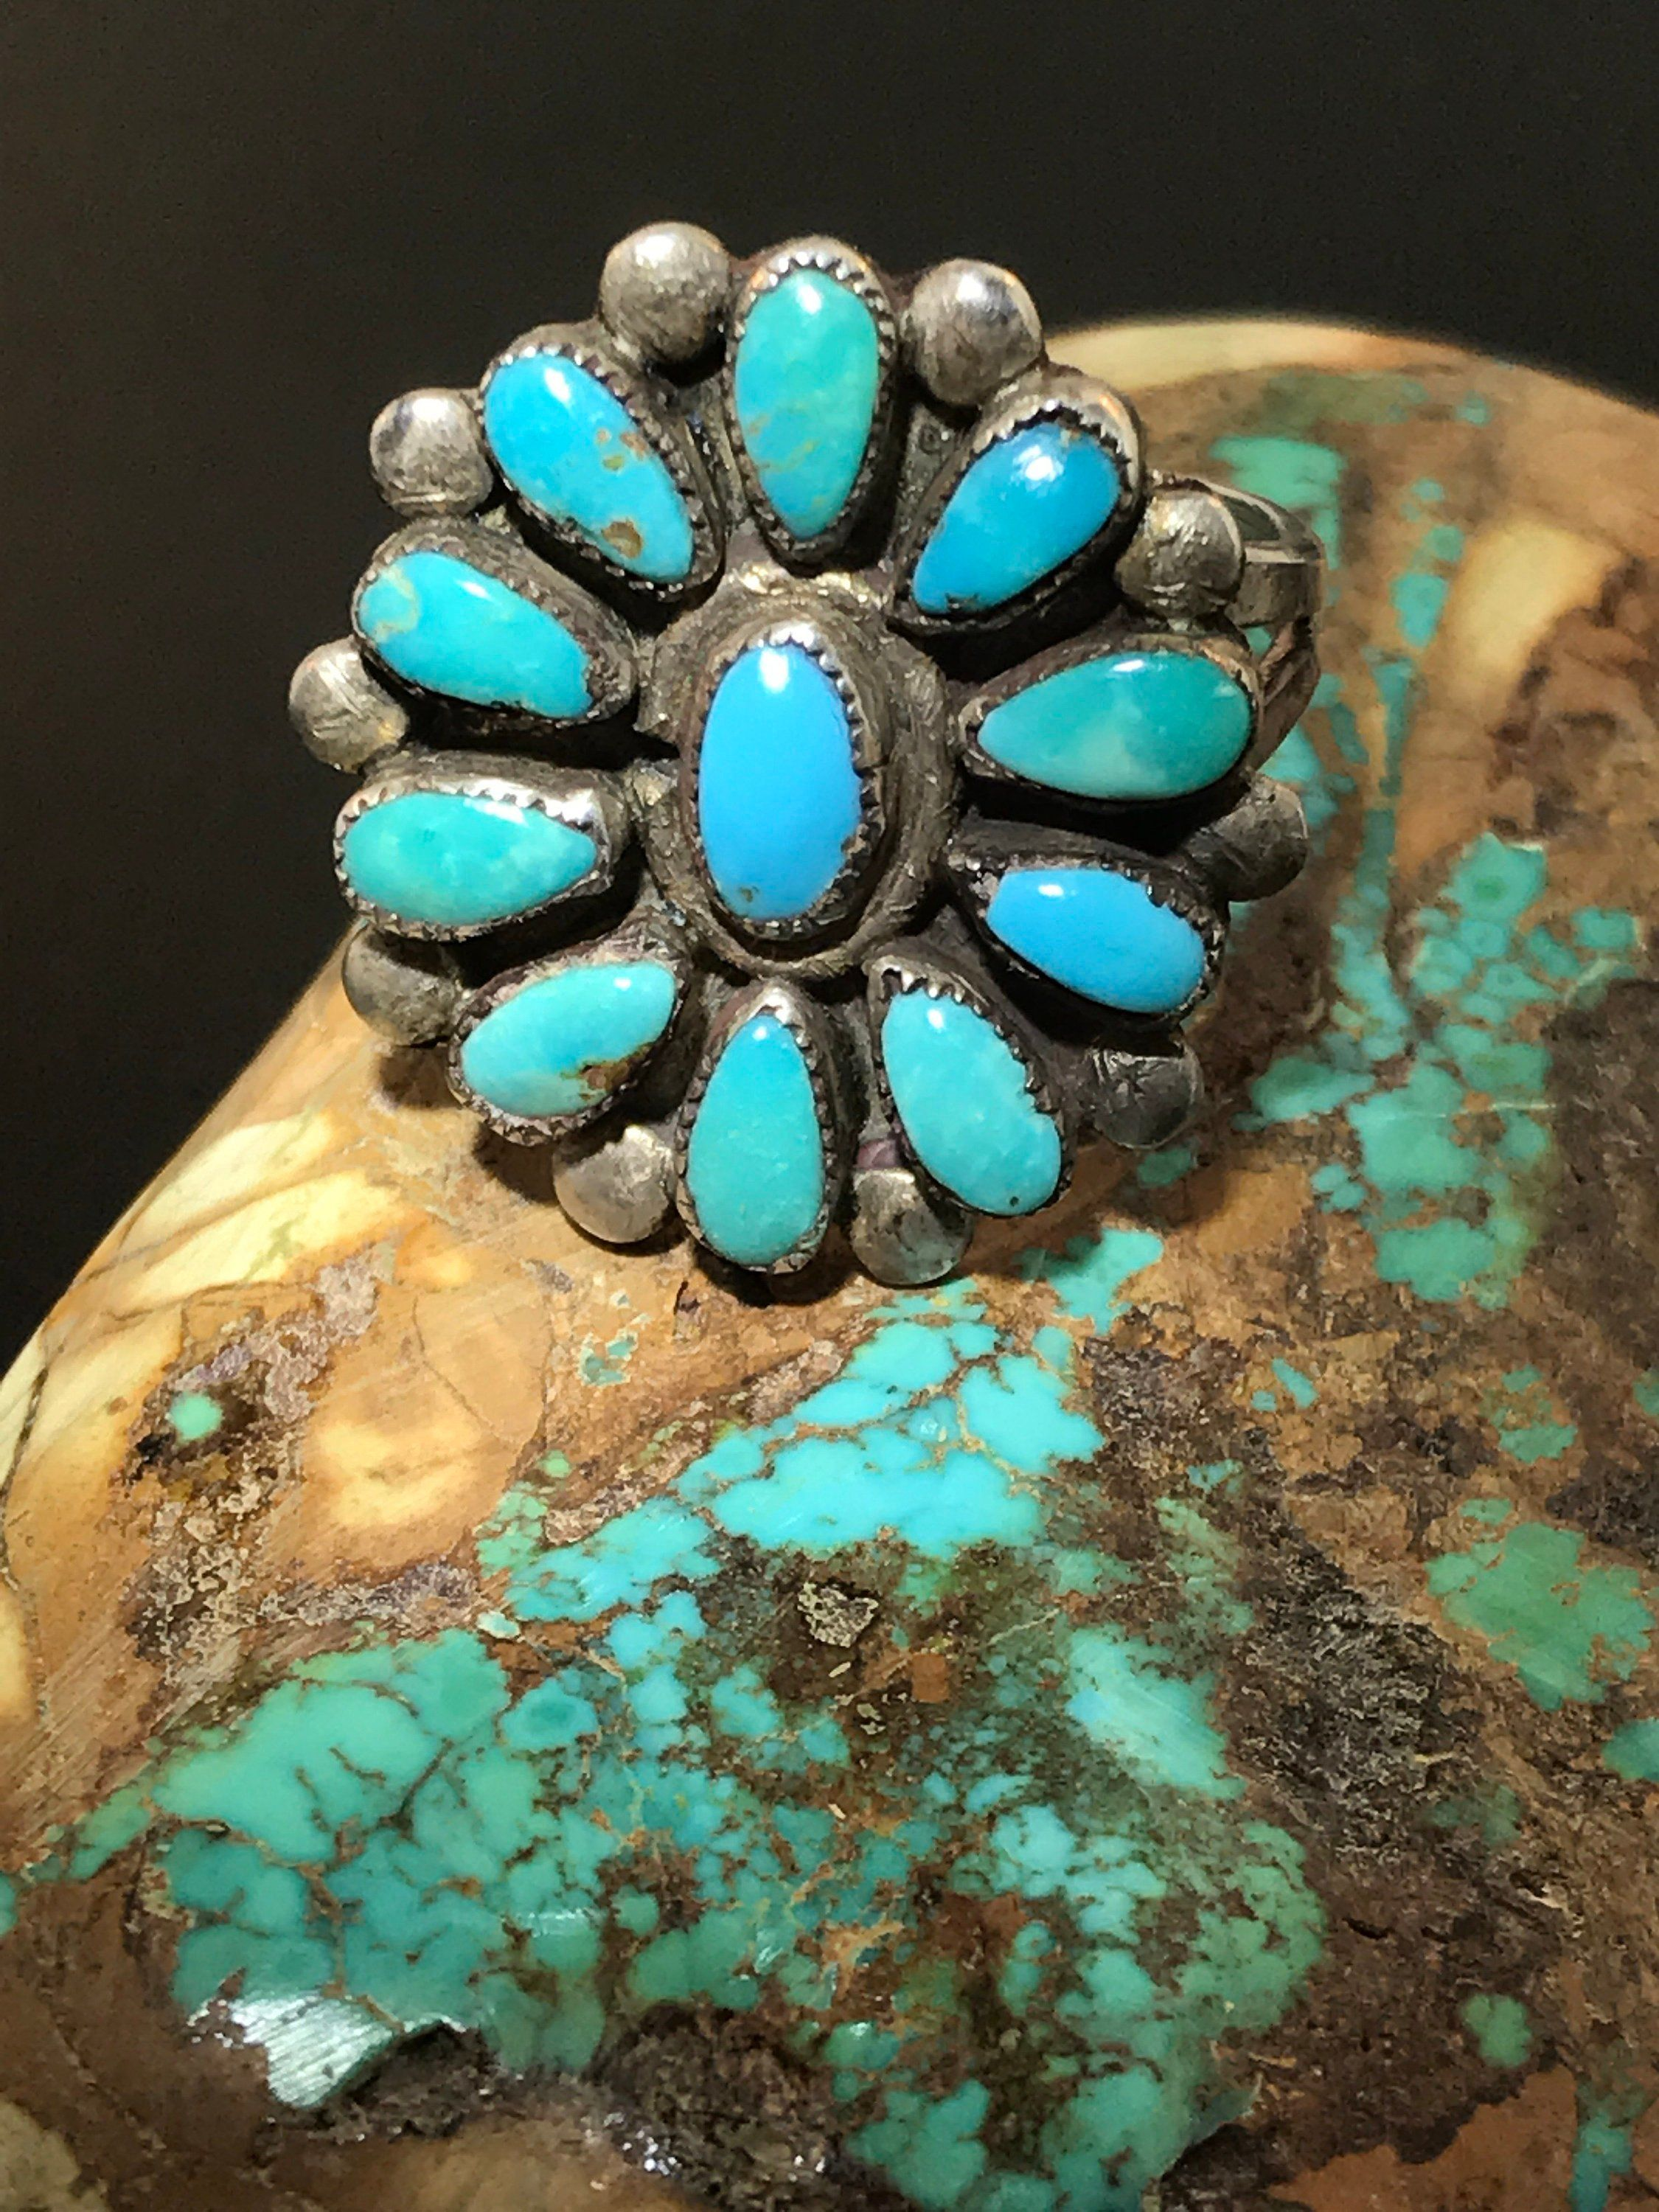 SIGNED Vintage Native America Indian Jewelry Navajo Zuni Petit Point Sterling Silver Turquoise Ring Southwestern Jewelry Needlepoint